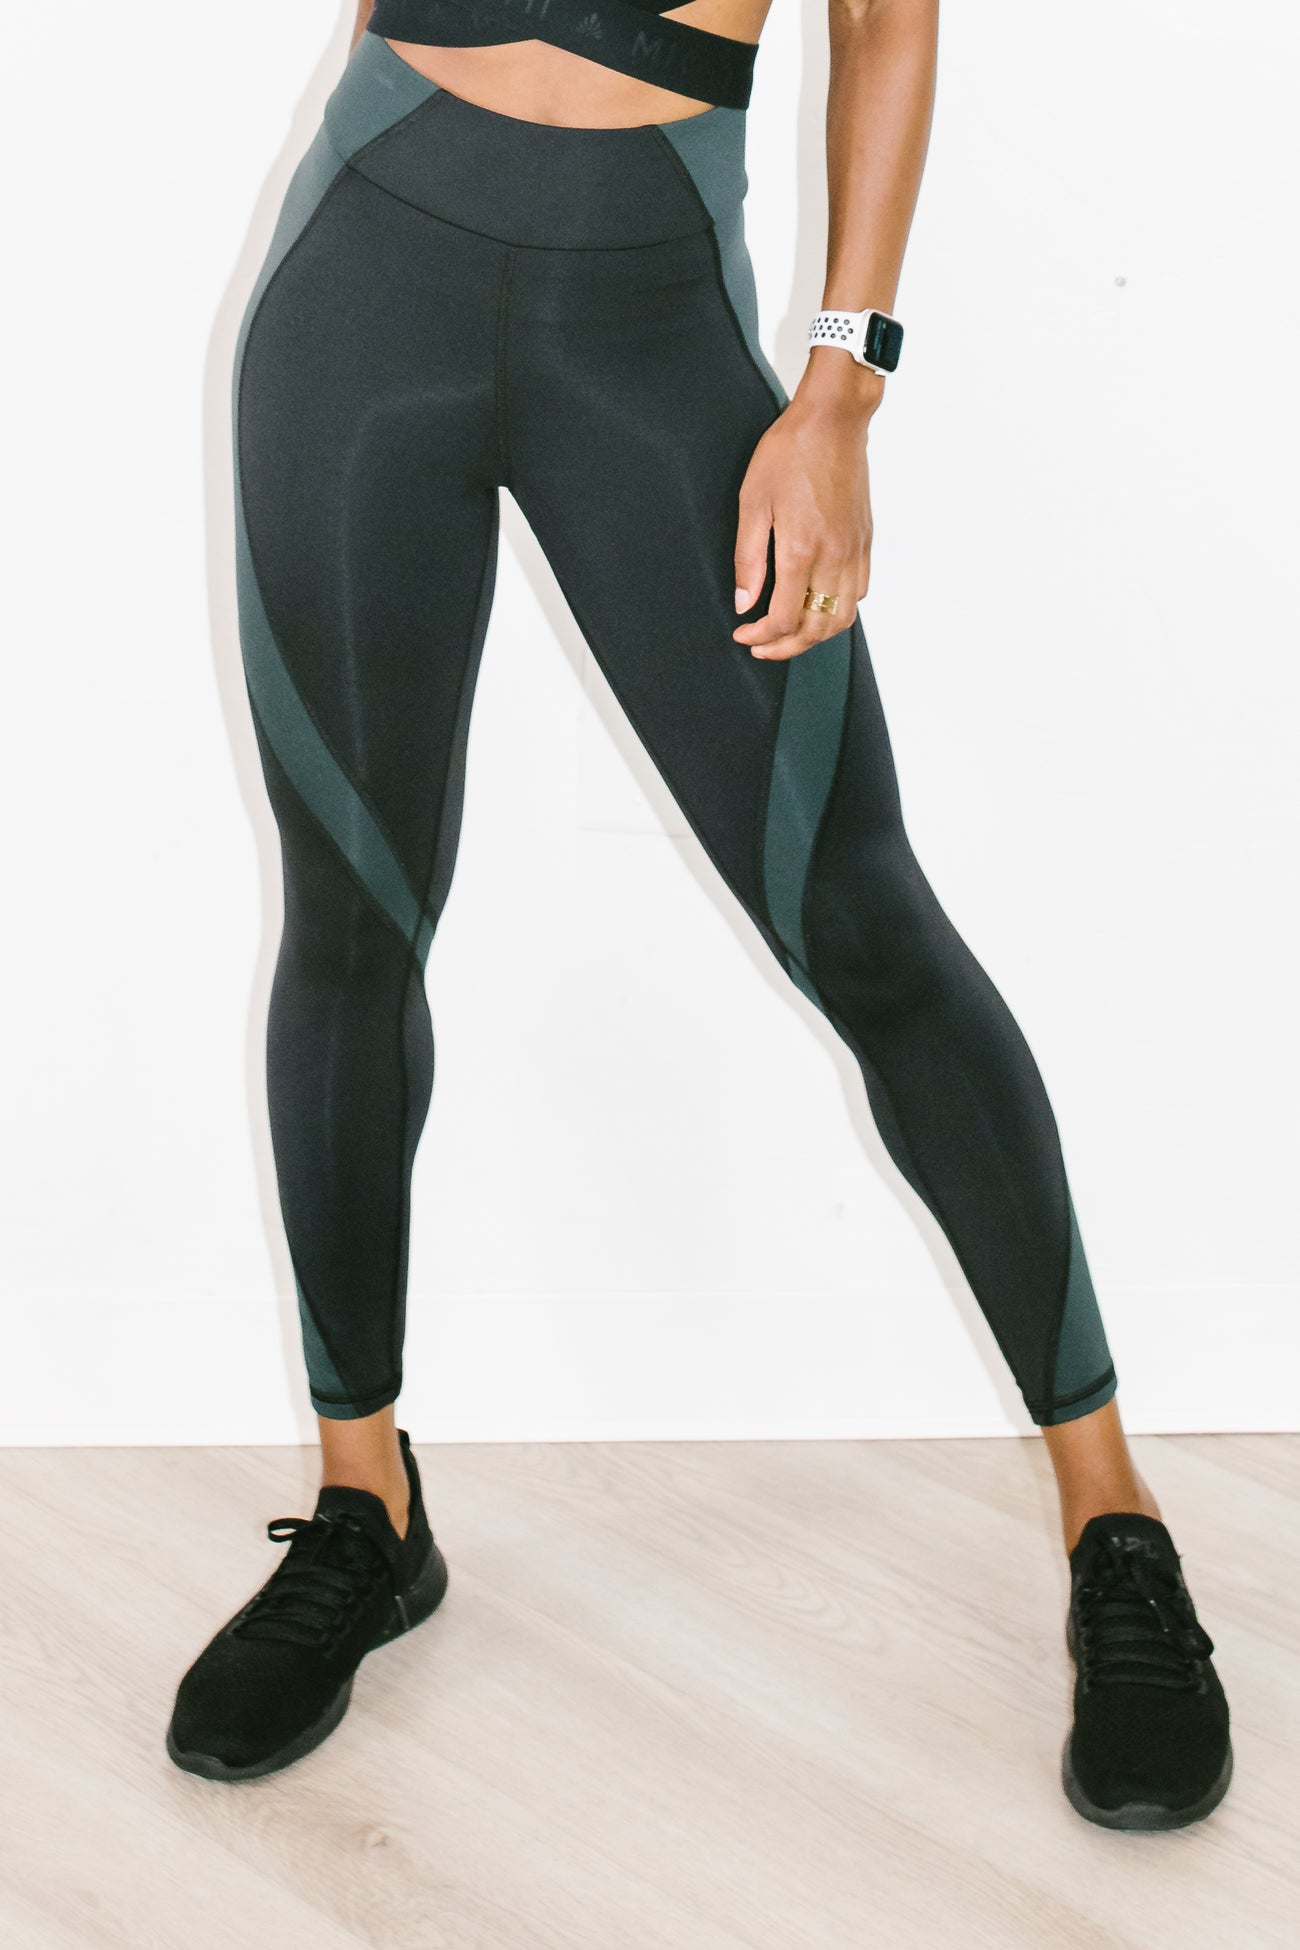 Stellar Legging Black + Forest